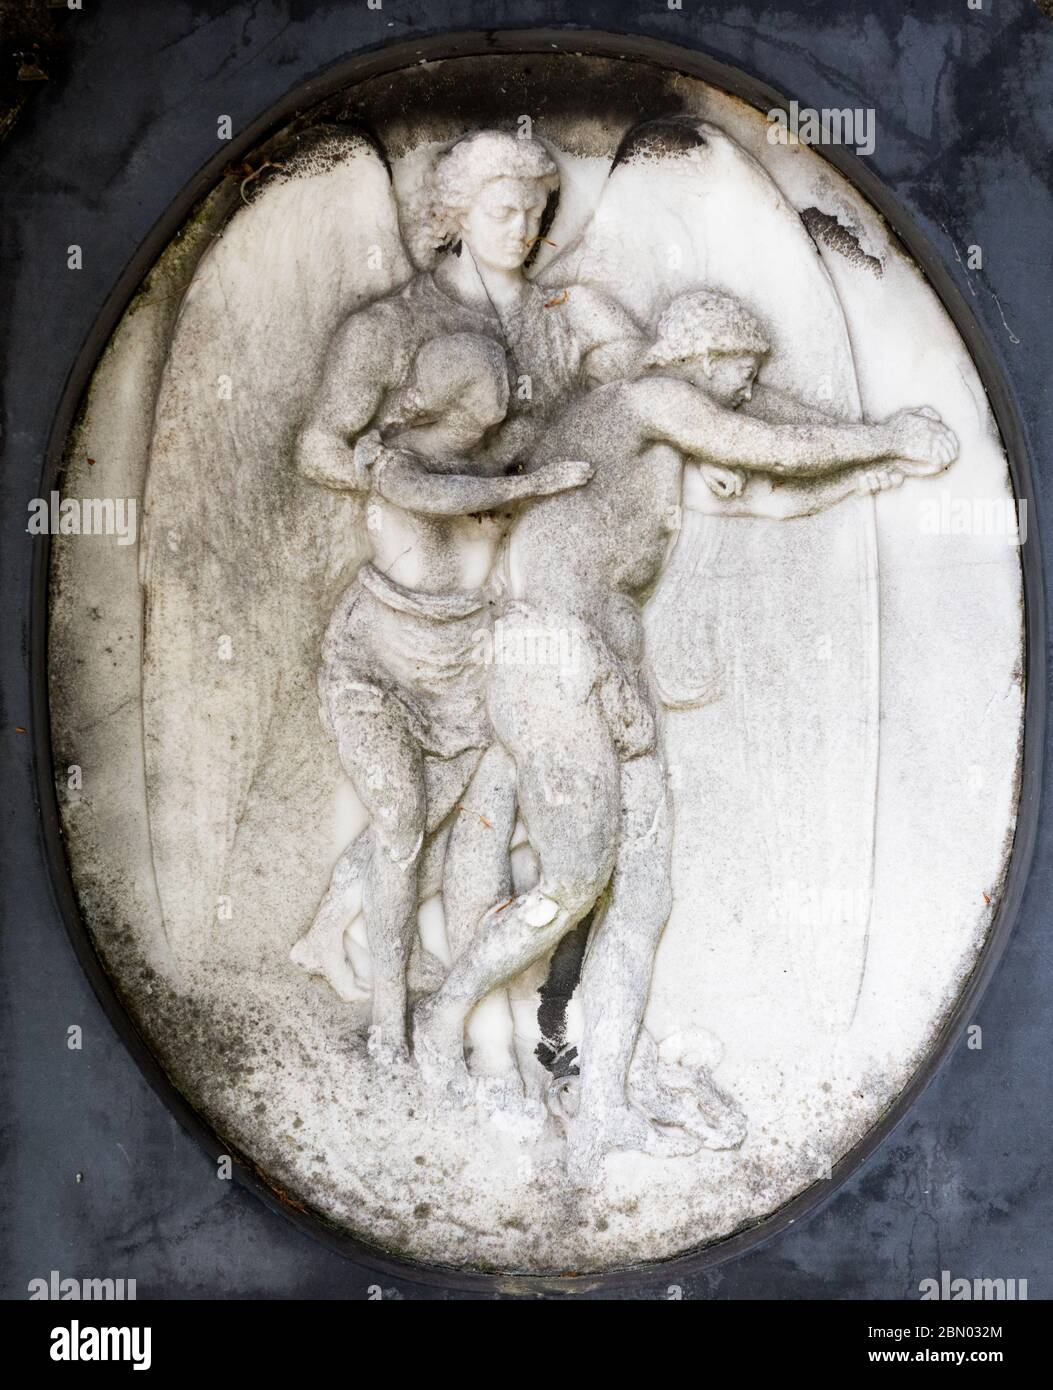 Bas-relief of two figures incised on a tomb in Brompton Cemetery, Kensington, London; one of the 'Magnificent Seven' London cemeteries, built in 1840 Stock Photo